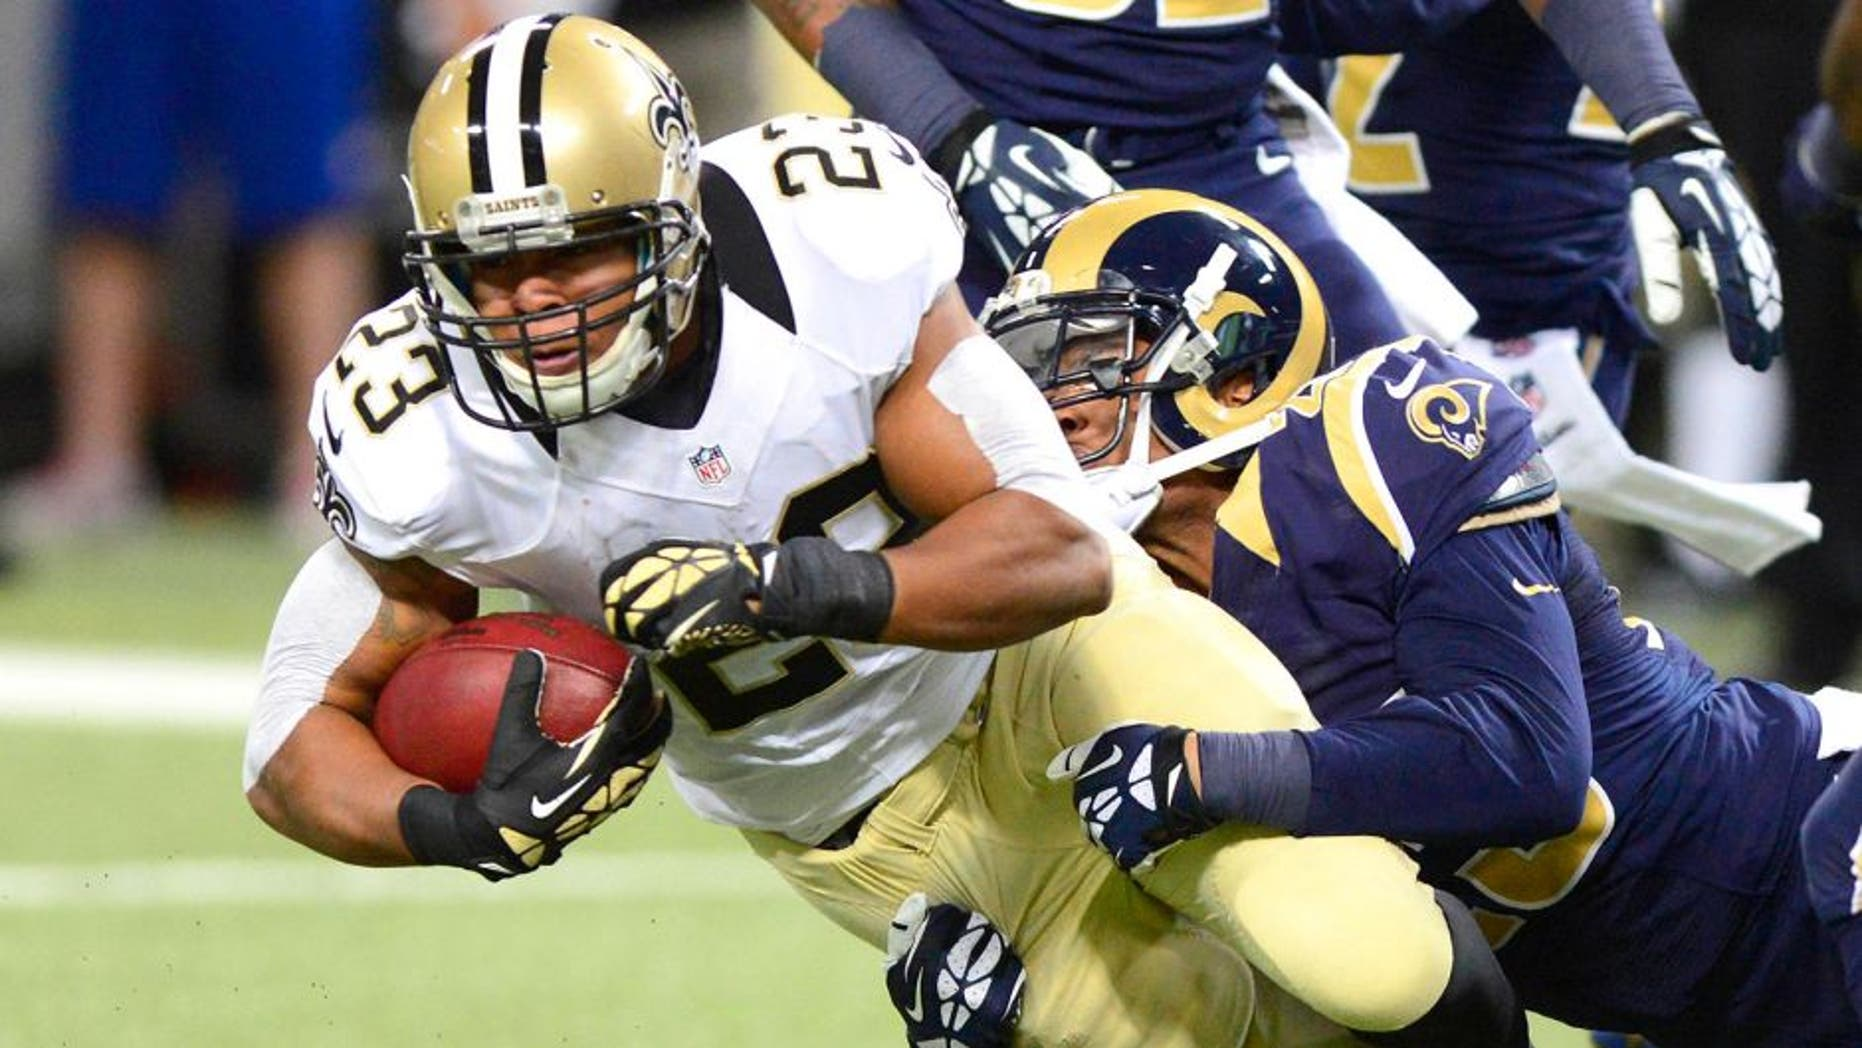 Dec 15, 2013; St. Louis, MO, USA; New Orleans Saints running back Pierre Thomas (23) is tackled by St. Louis Rams free safety Rodney McLeod (23) during the first half at the Edward Jones Dome. The Rams defeated the Saints 27-16. Mandatory Credit: Jeff Curry-USA TODAY Sports